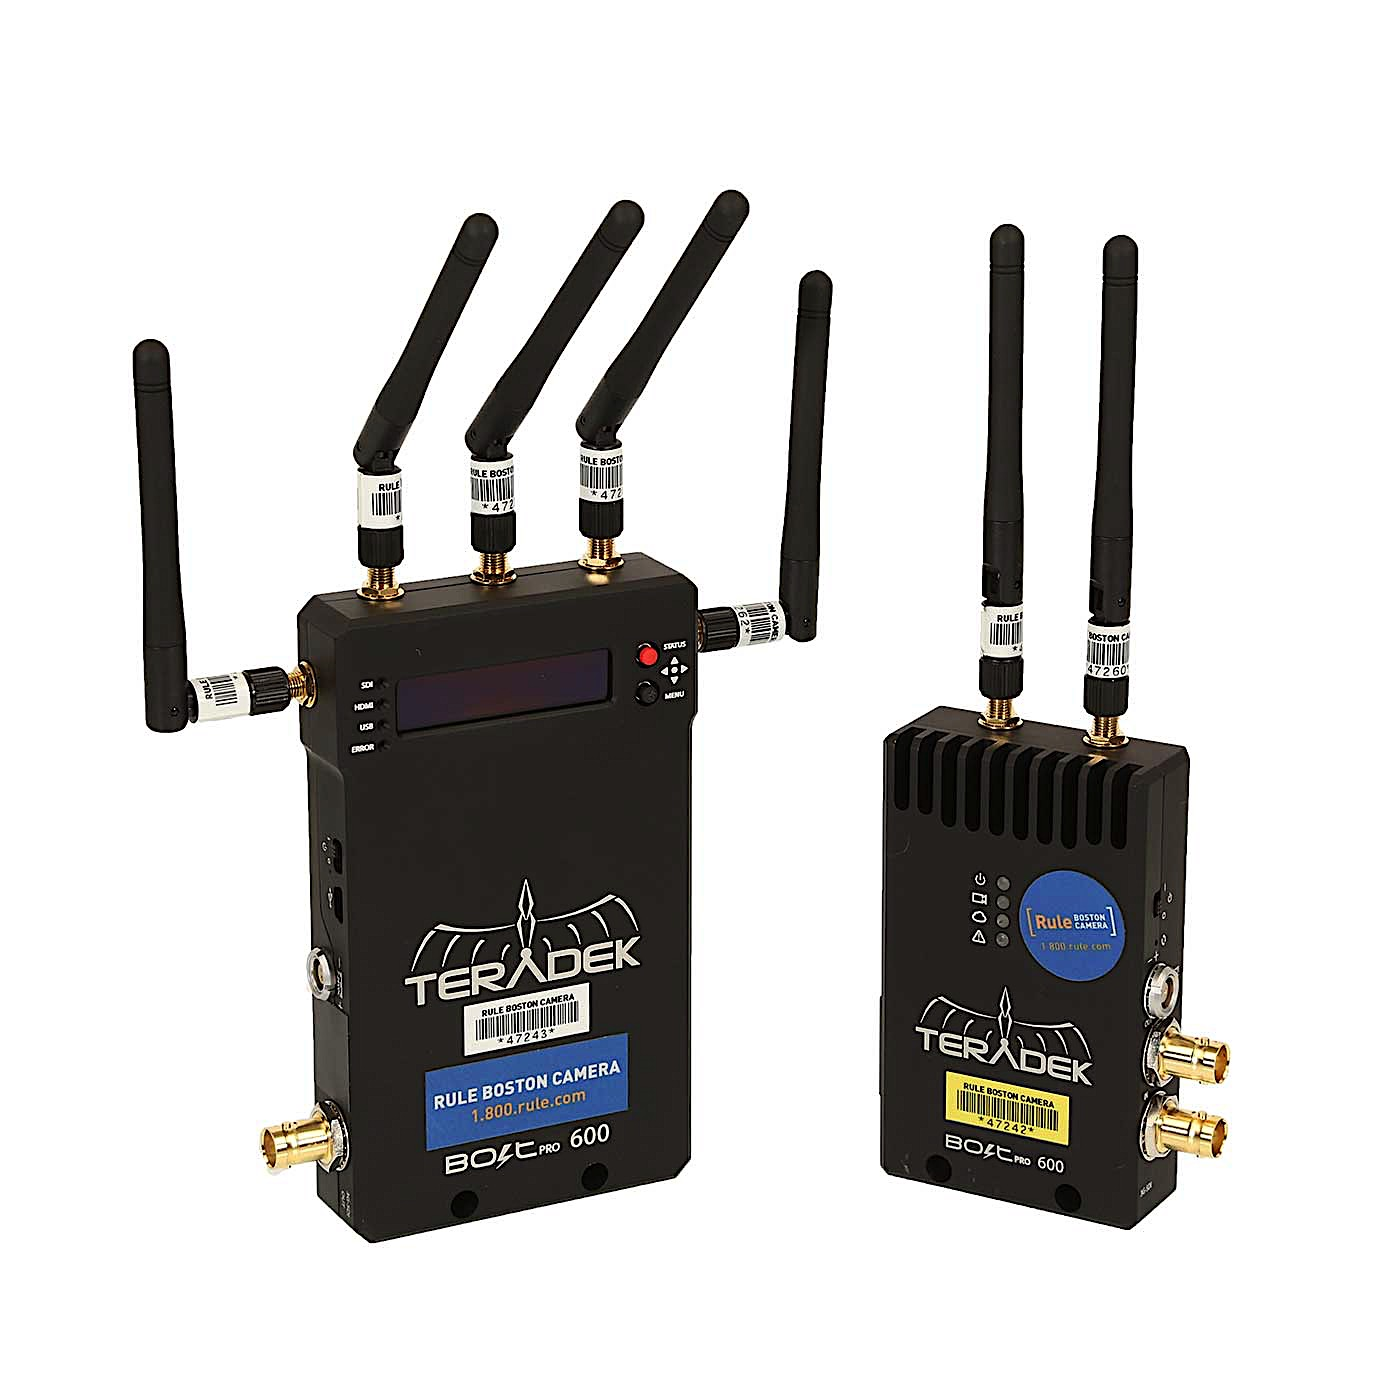 Teradek Bolt Pro 600 HD SDI Video Transmitter